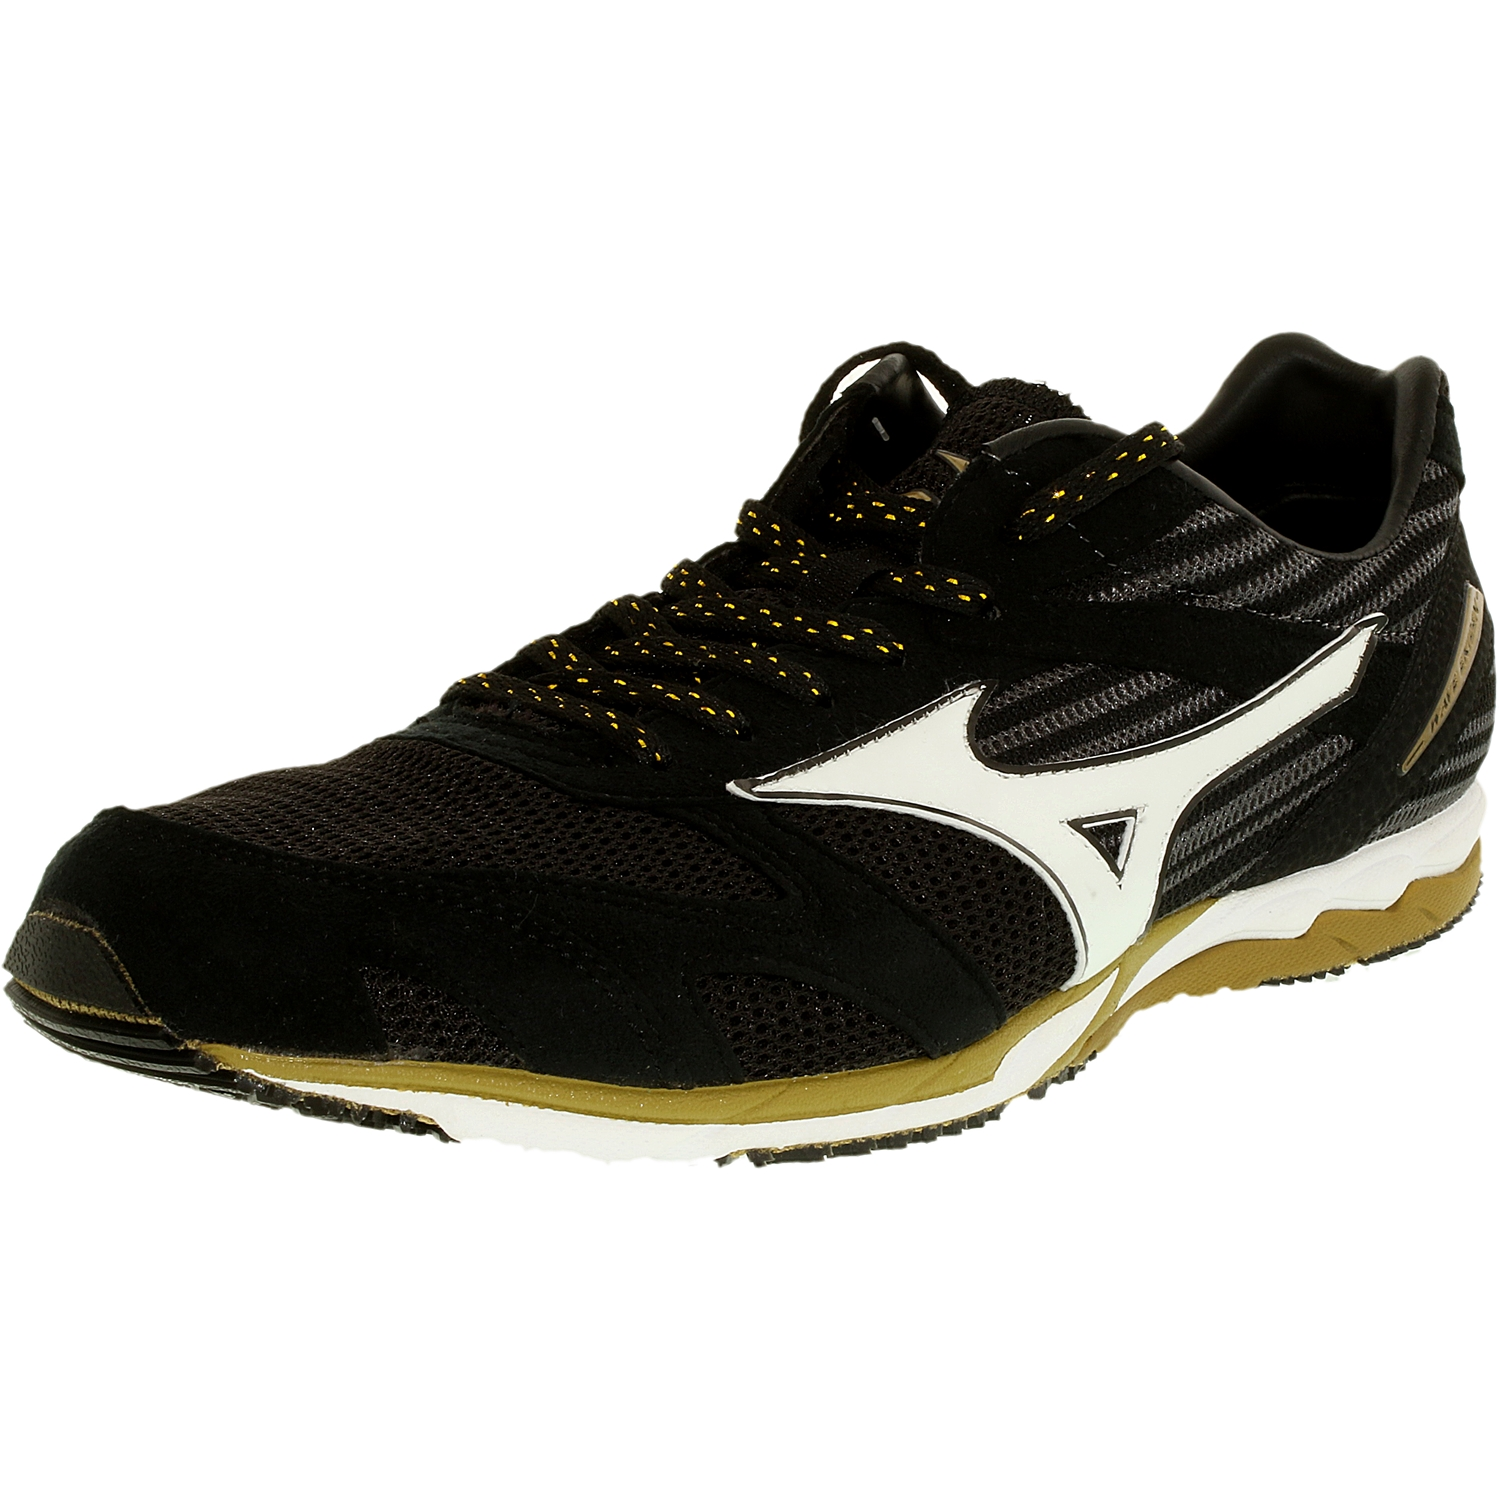 mizuno mens running shoes size 9 youth gold for high up